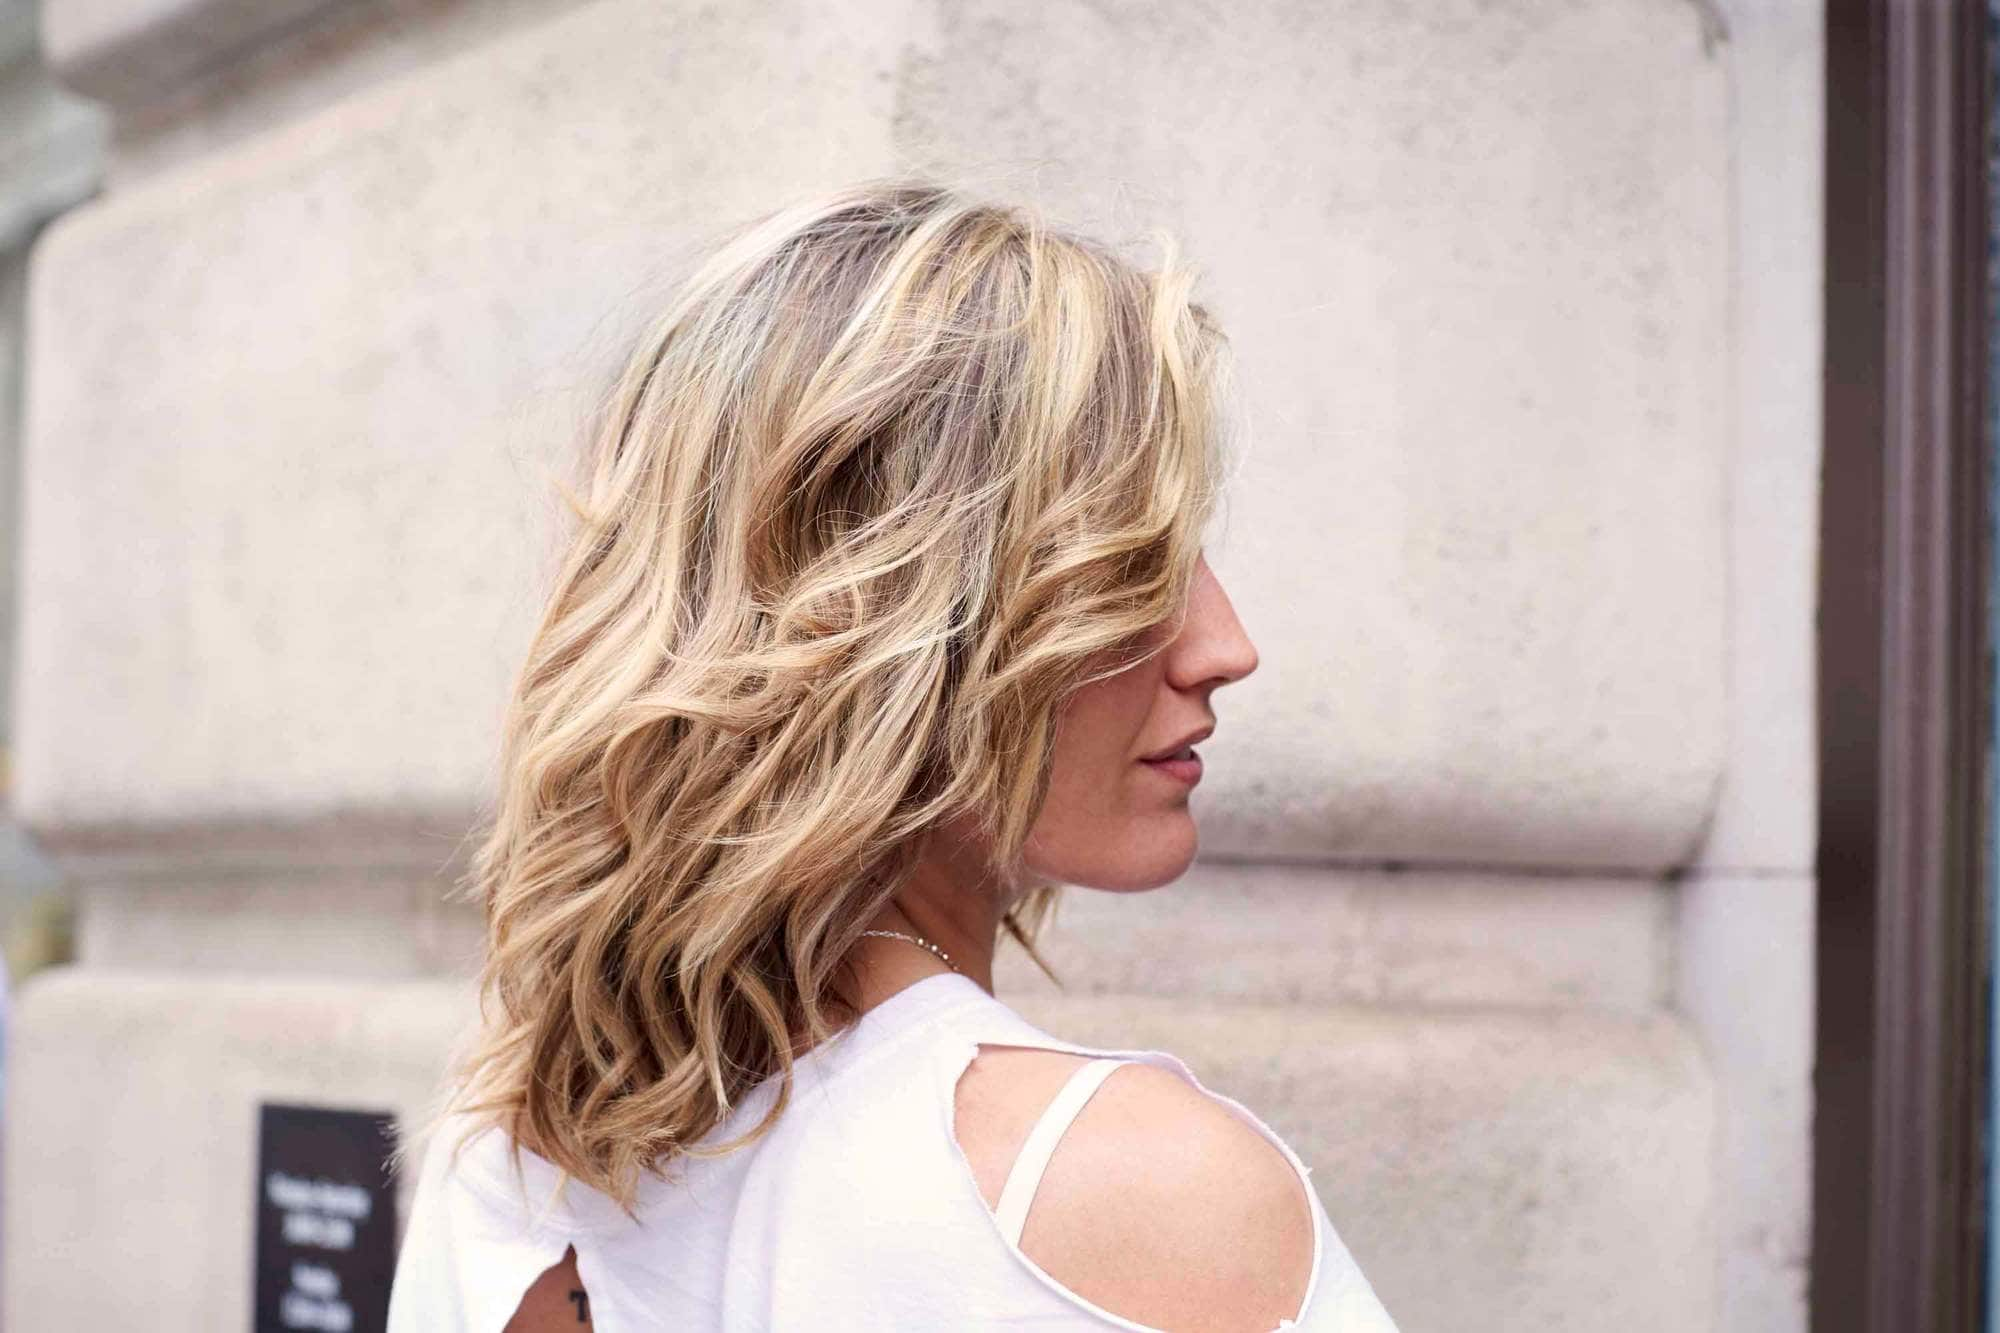 Haircuts For Thick Wavy Hair: 14 Head-Turning Hairstyles